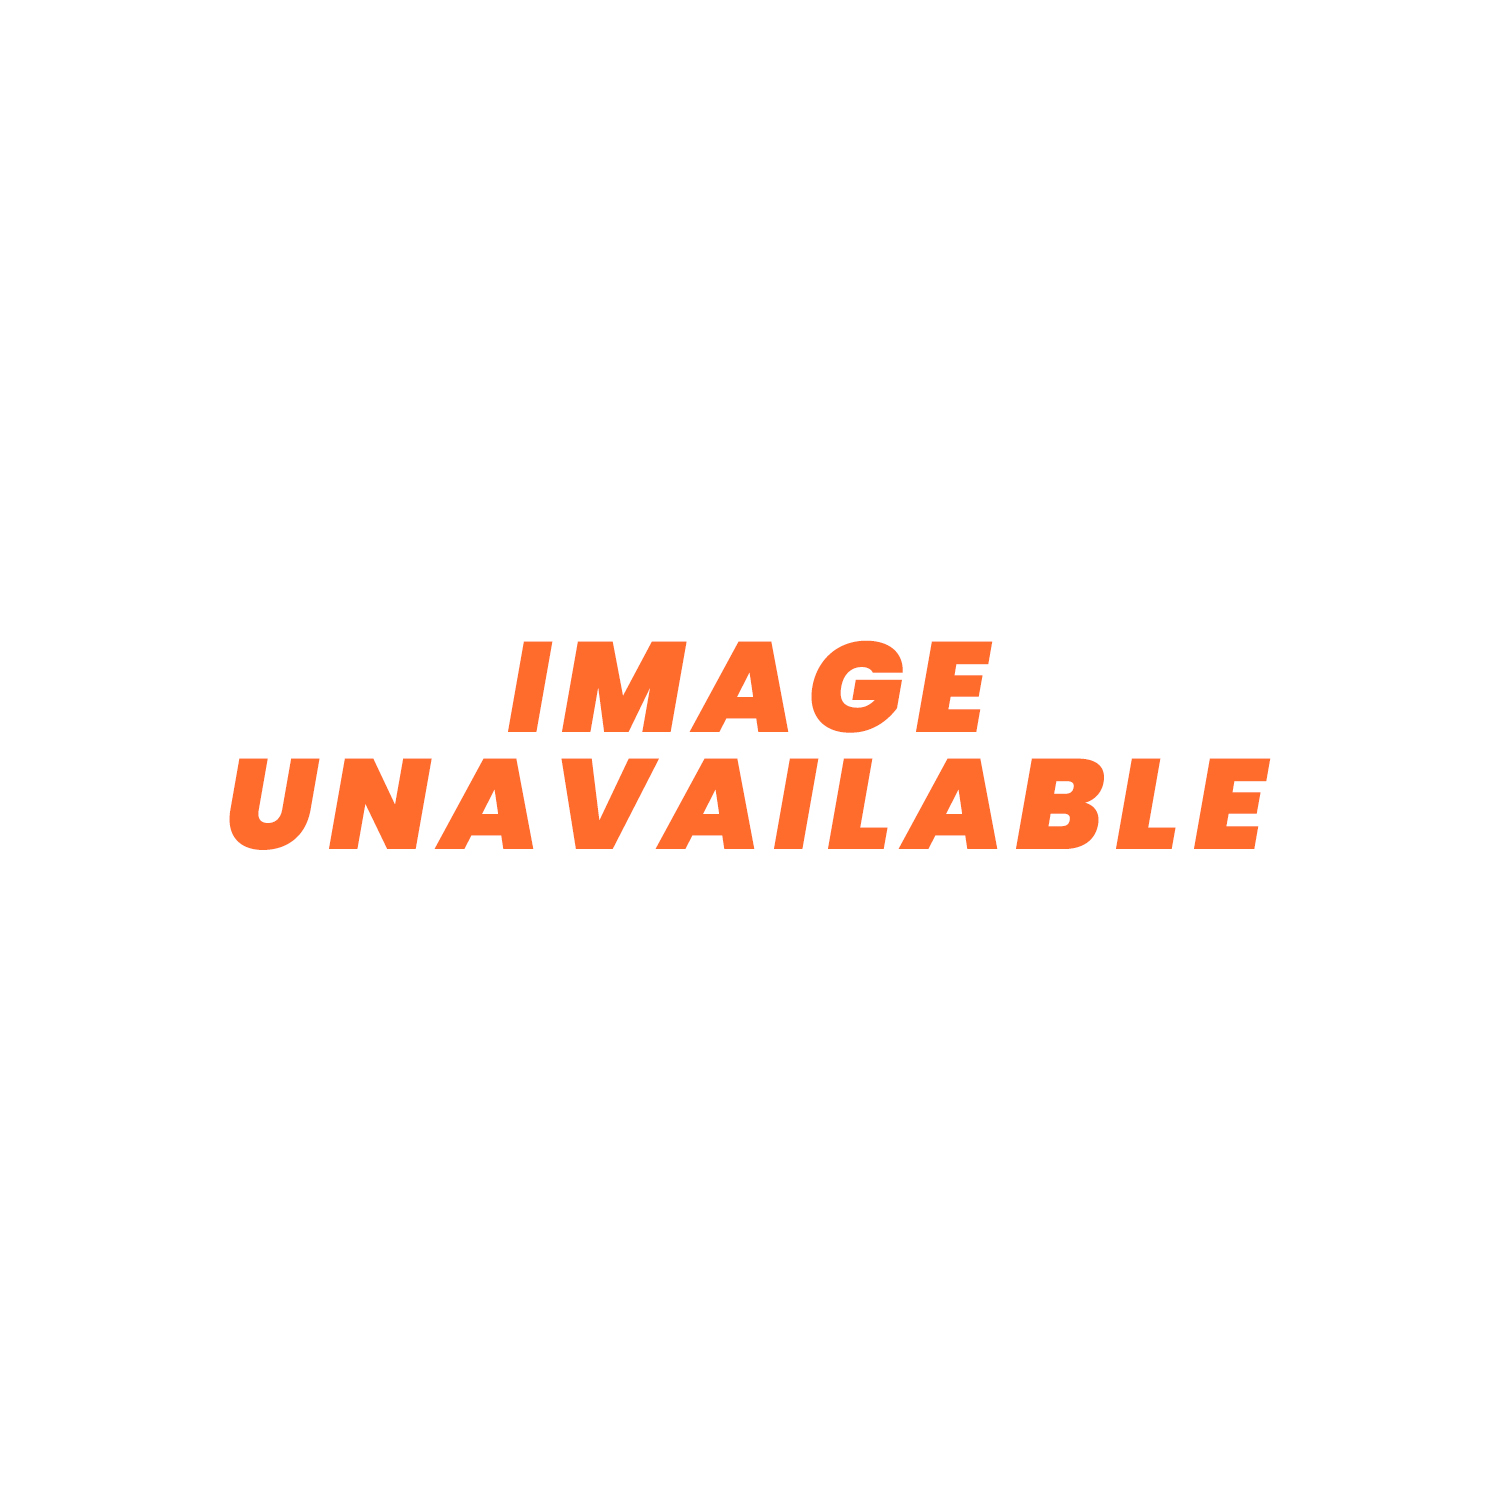 BC1205 Battery Charger 115/230v to 12v 5a - 1753980